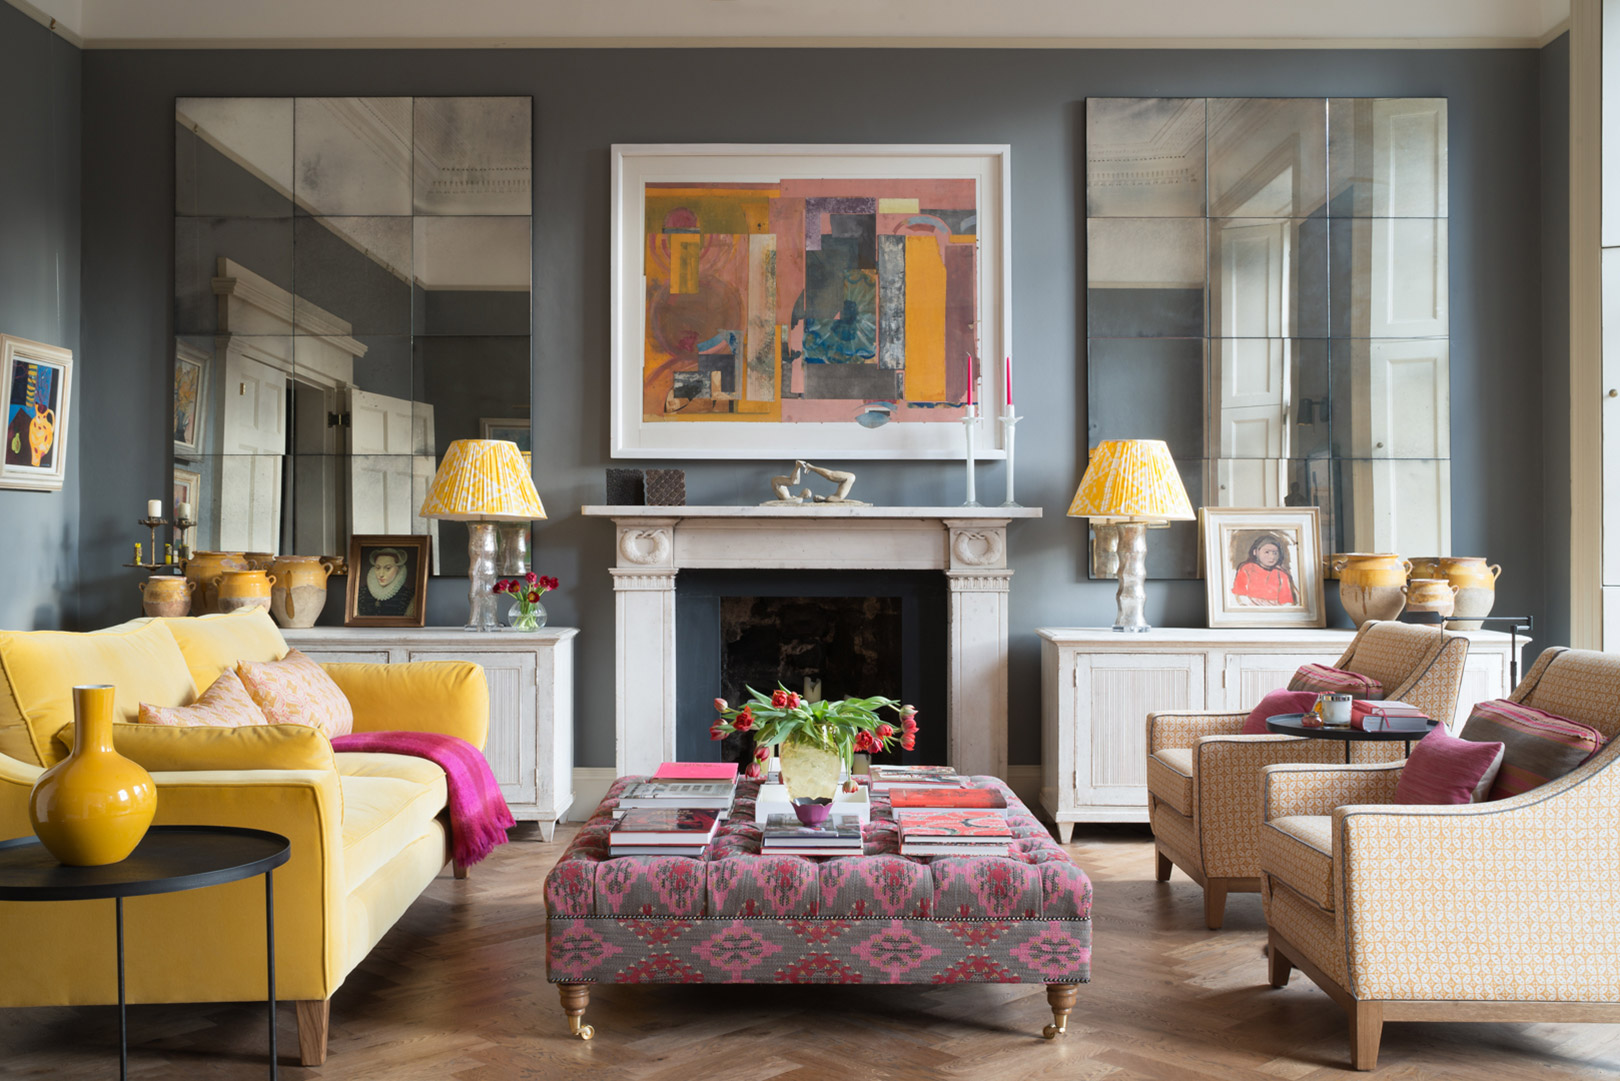 Jessica-Buckley---4-1-N-E-Circus-Place-Livingroom-image-©-ZAC-and-ZAC-(1-of-15)